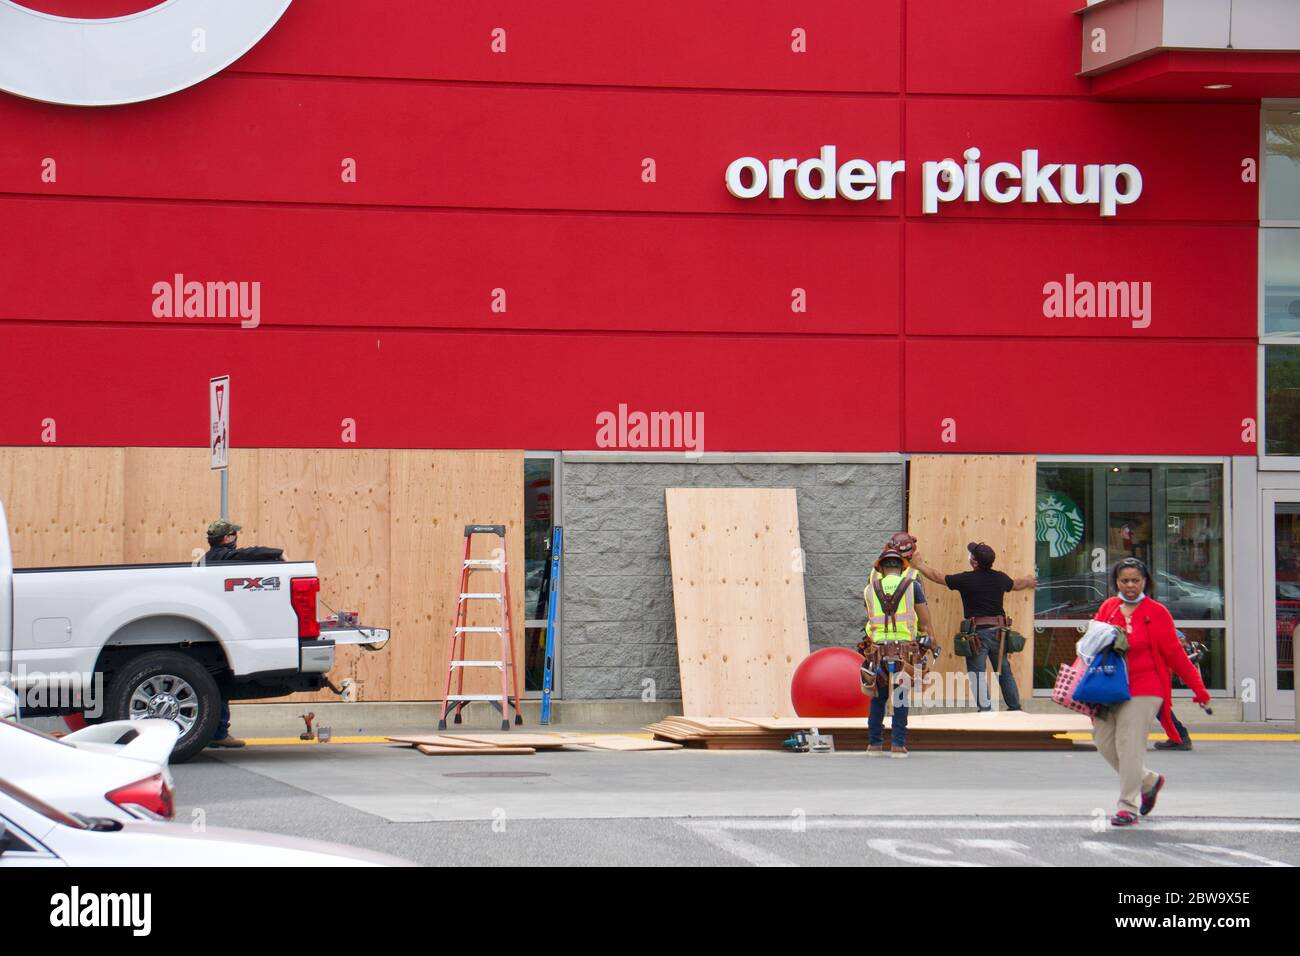 Workers board up Target store windows to safeguard against looters after the killing of George Floyd by a police officer in Minneapolis. Oakland, CA Stock Photo